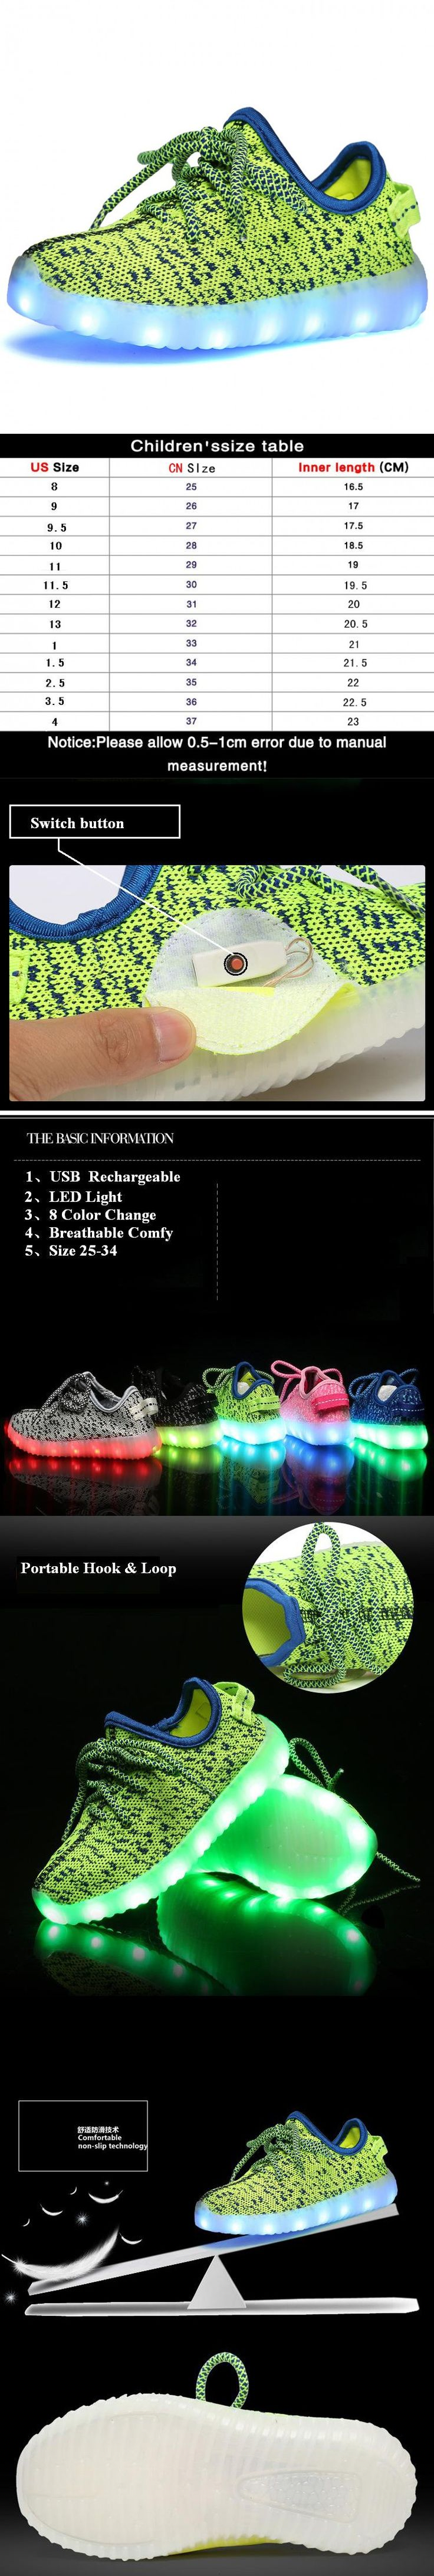 a3e16576889958b5ca308566fafd5491--kid-shoes-sneakers-shoes Fabelhafte Feuchtraum Led Einbaustrahler 230v Dekorationen